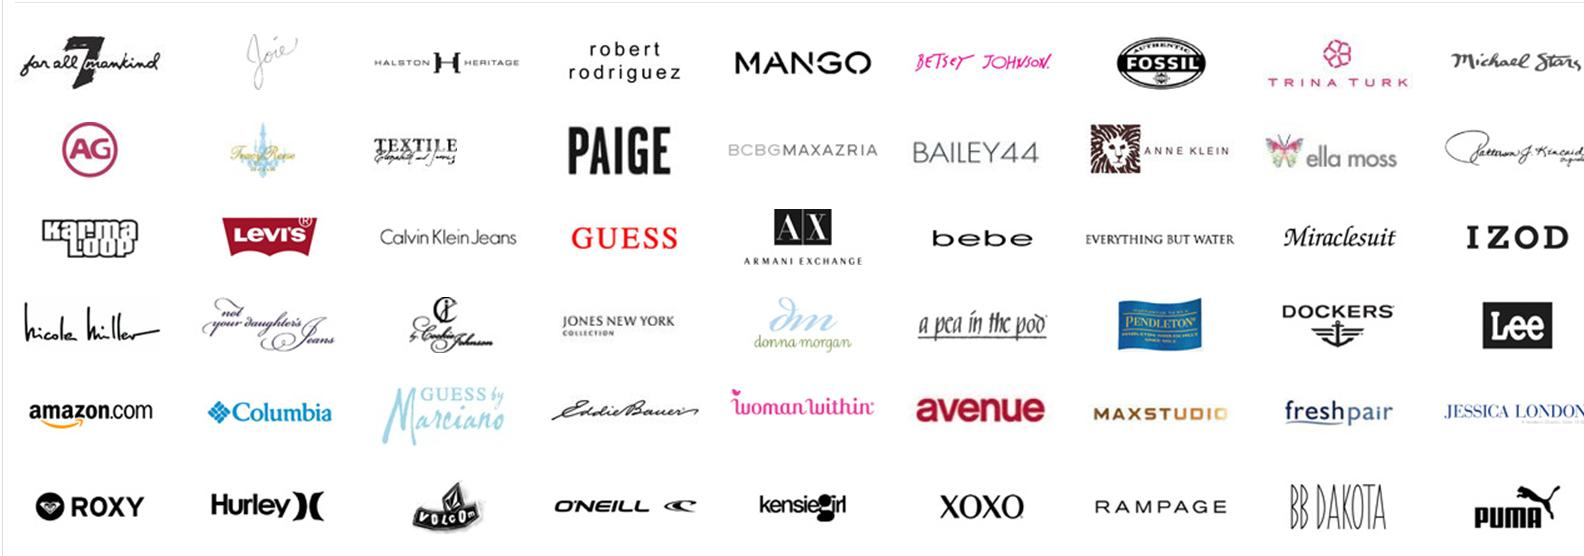 Screenshot showing logos of different brands